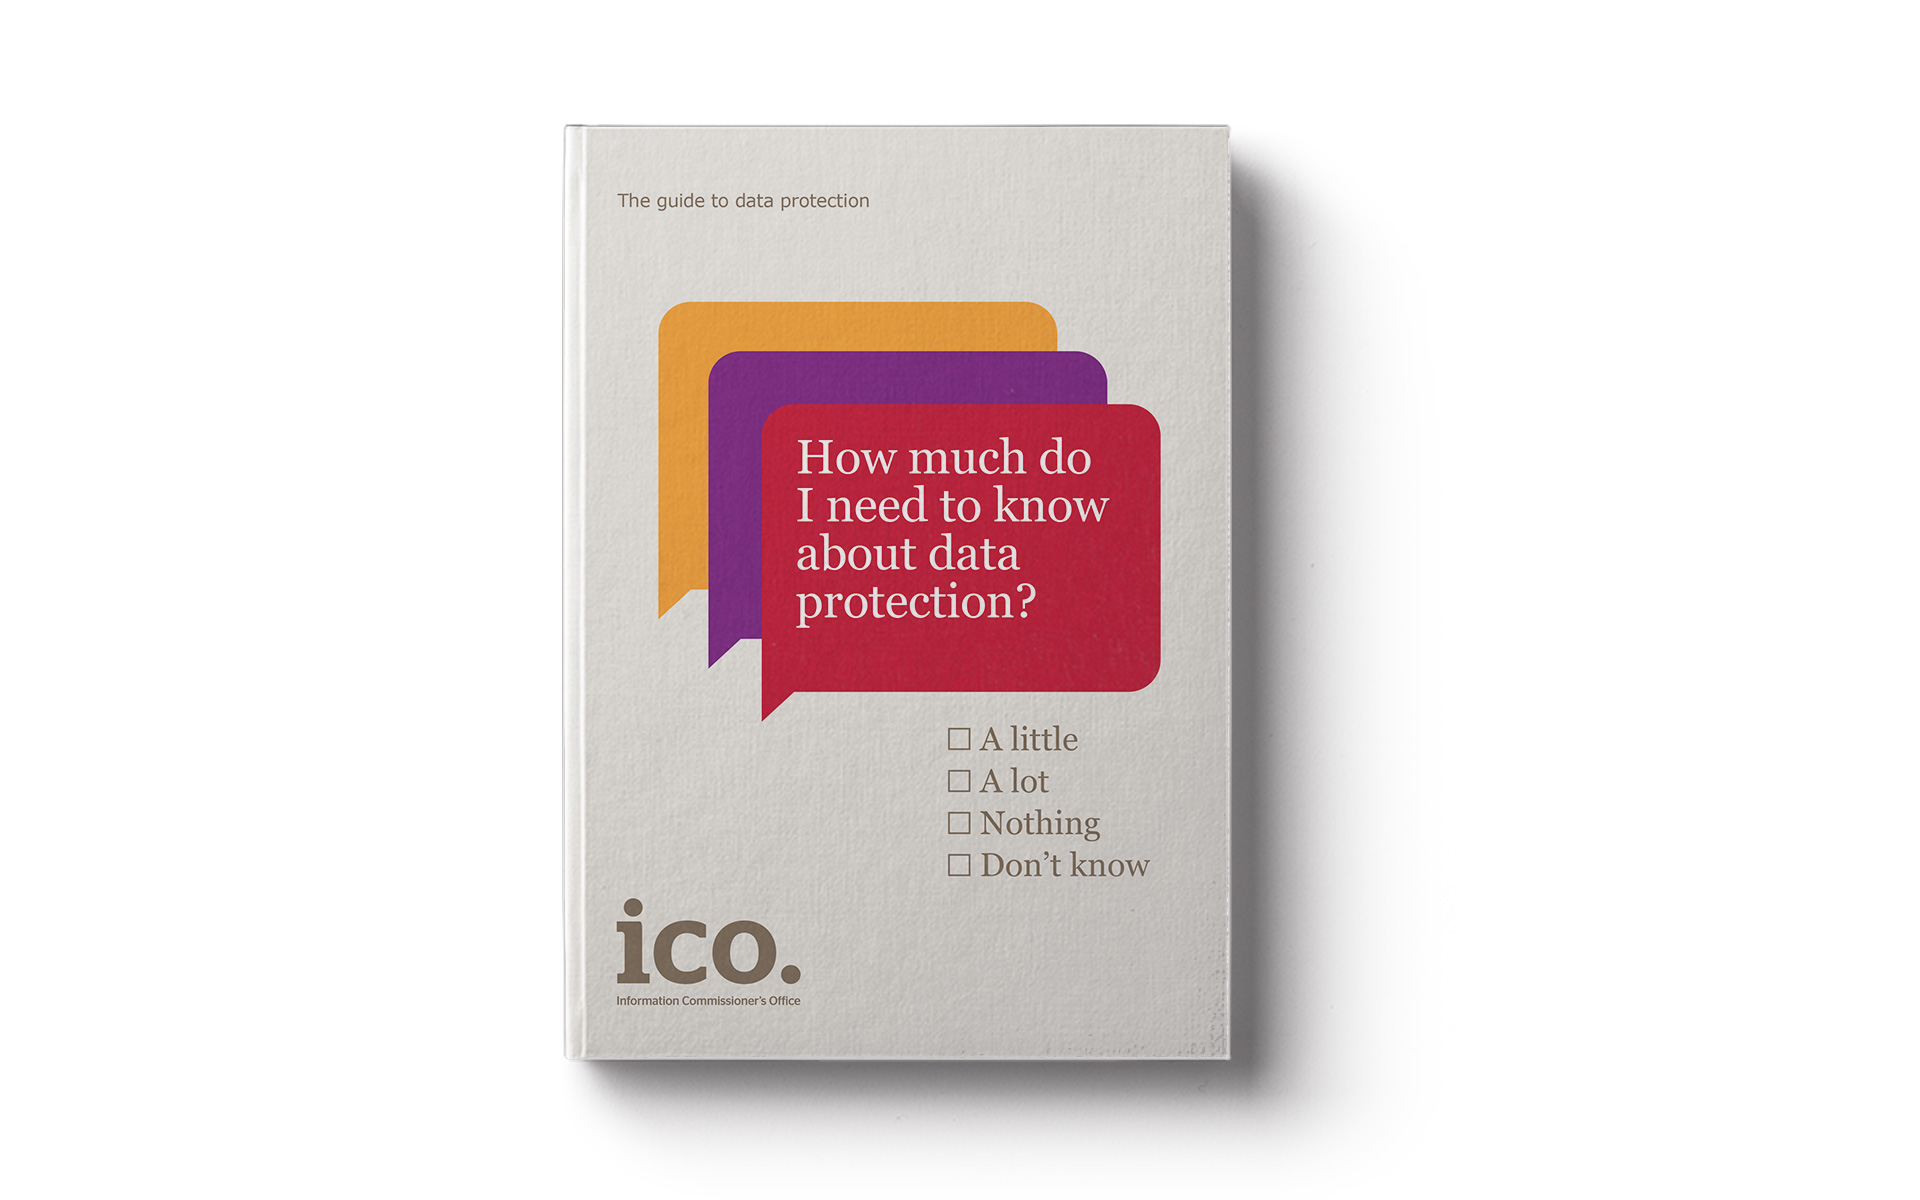 Information Commissioner's Office Guide to Data Protection